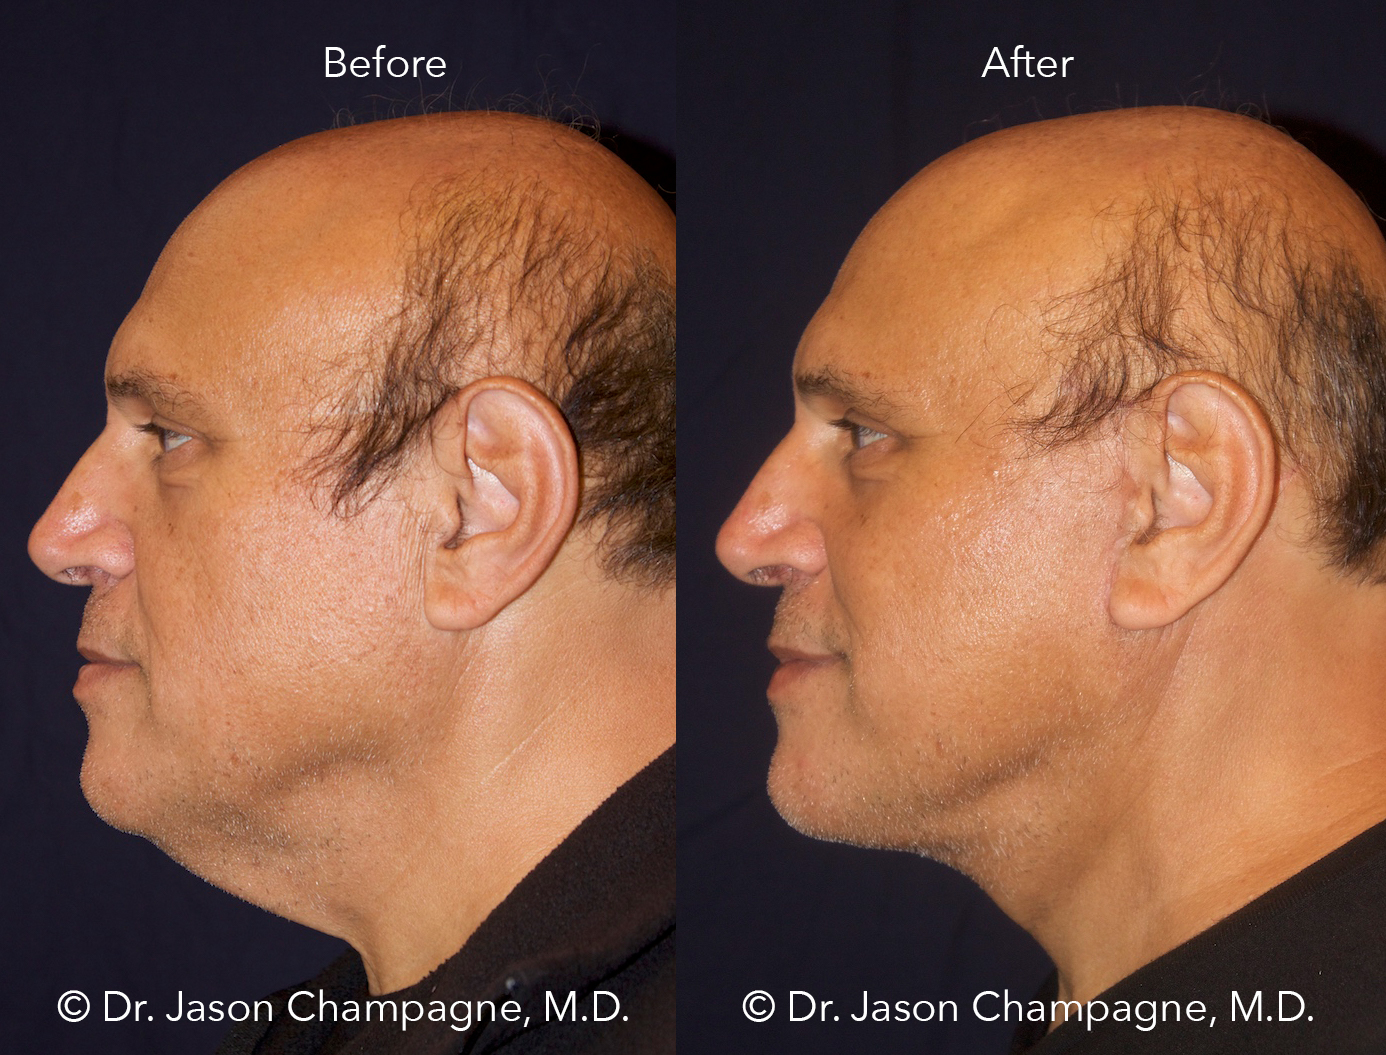 Dr-Jason-Champagne-lower-facelift-neck-lift-and-neck-liposuction-before-and-after